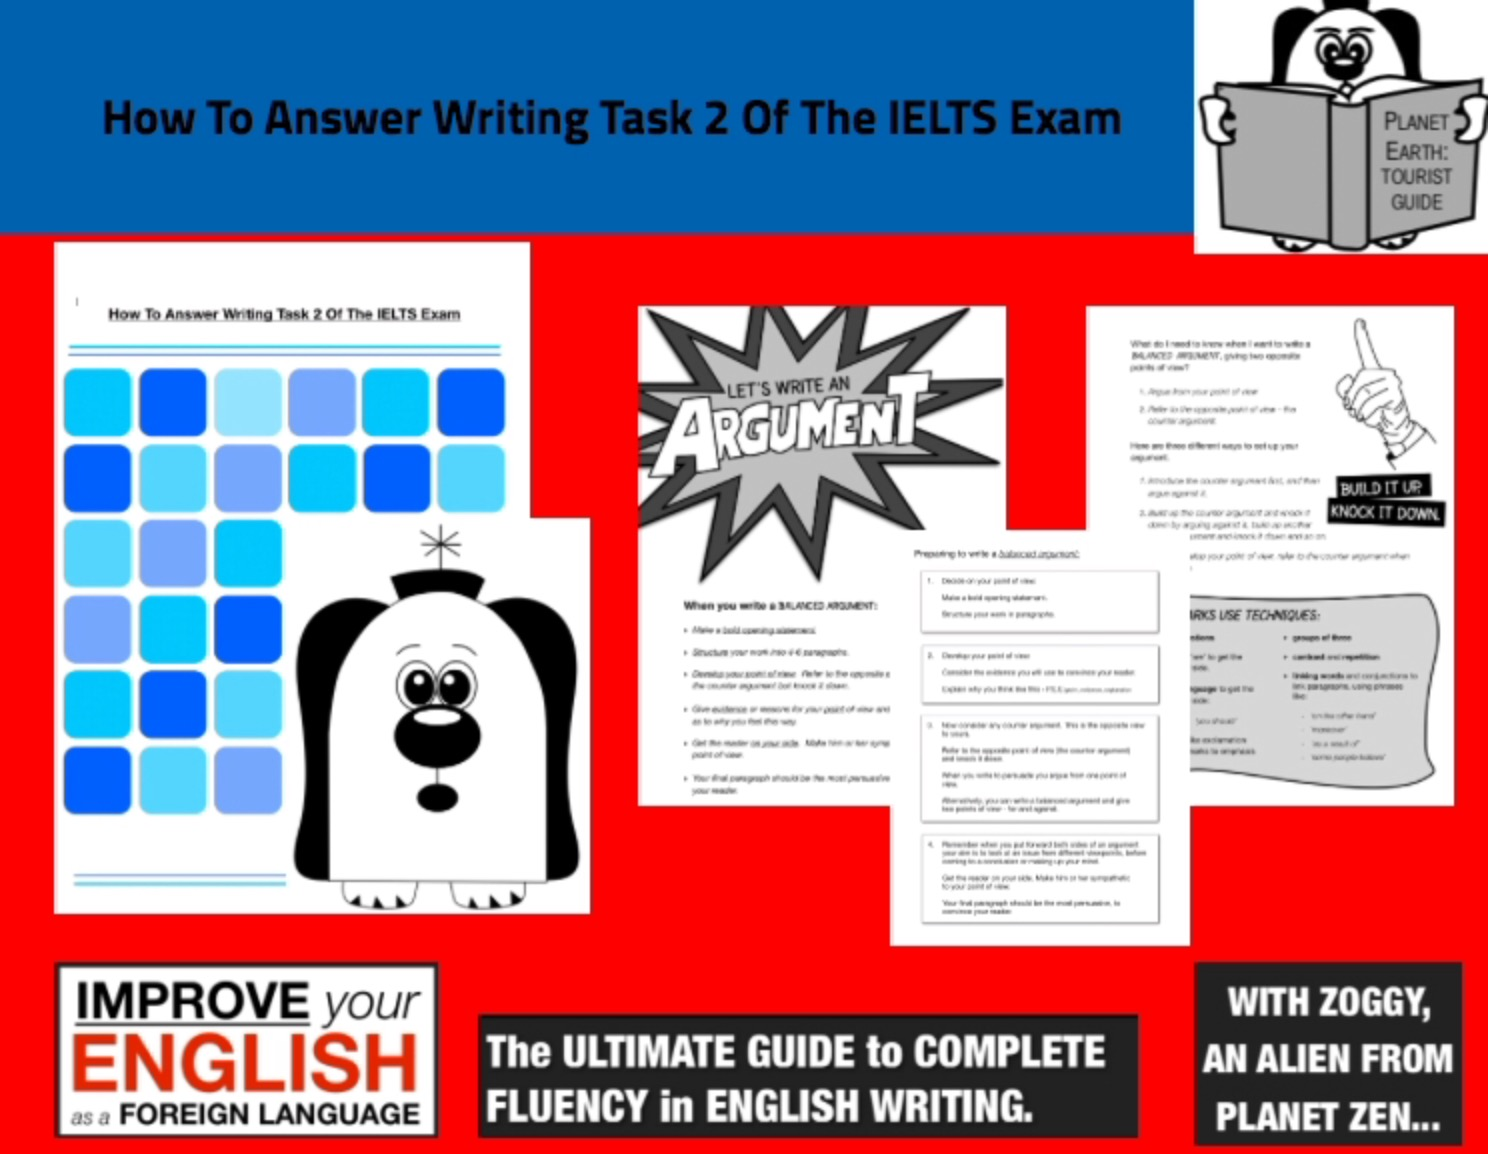 How To Answer 'Writing Task 2' Of The IELTS Exam